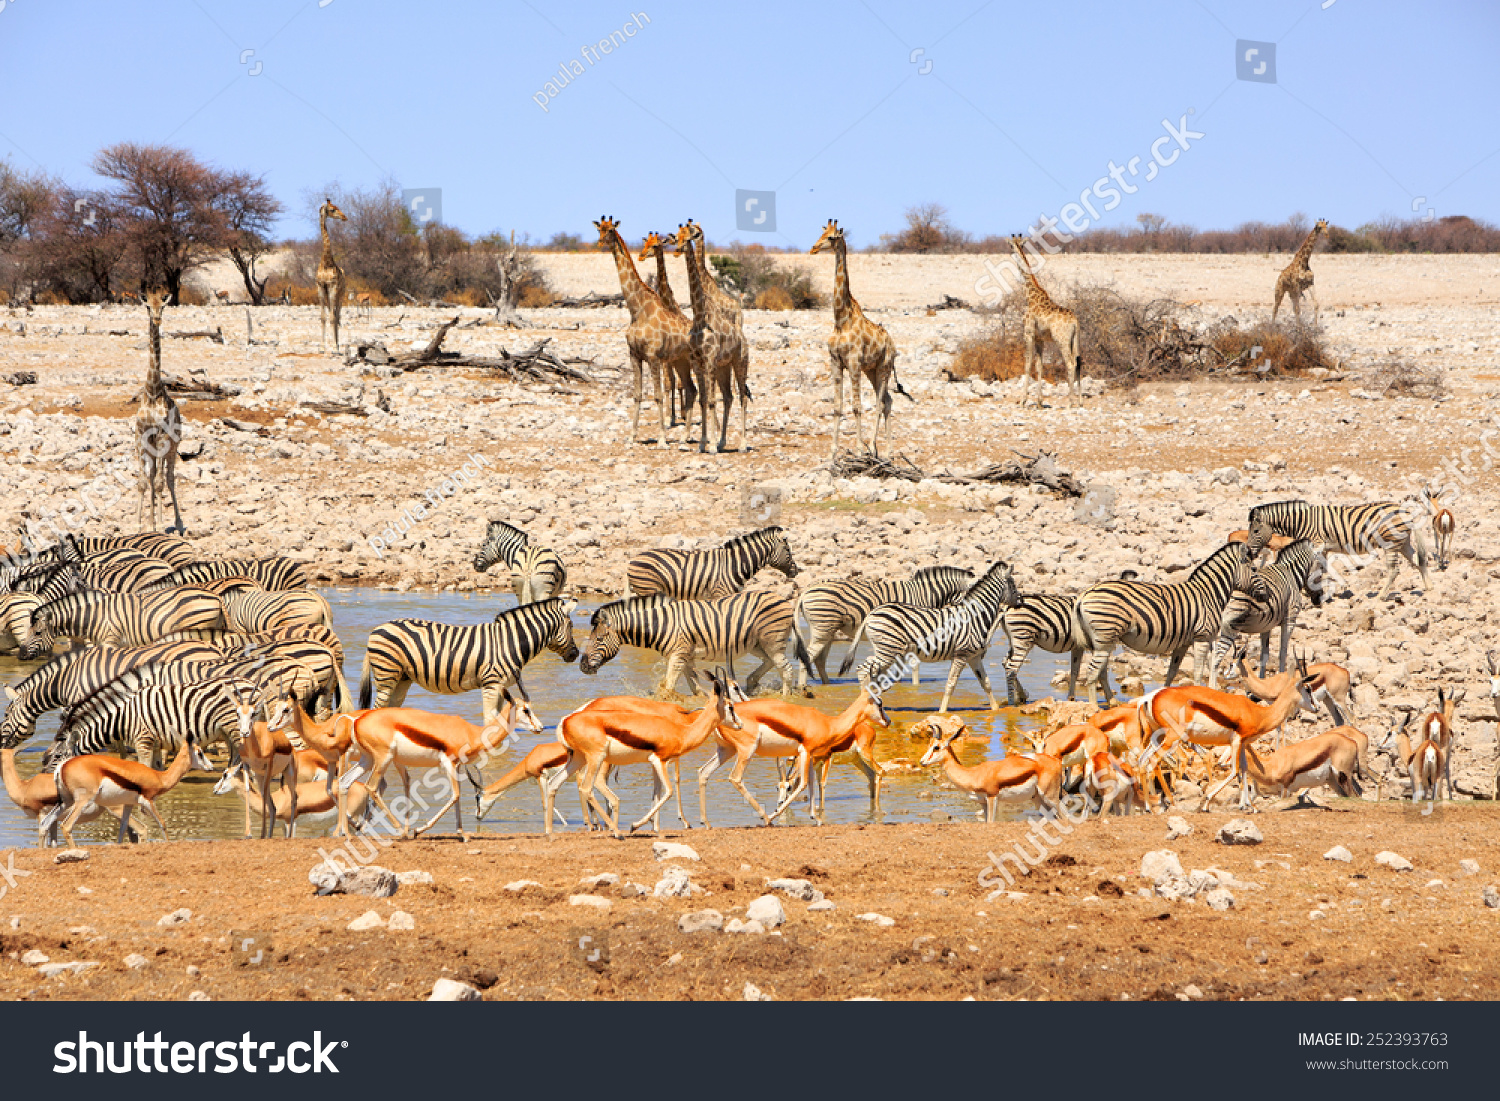 Waterhole in Etosha teeming with many different varieties of animals including, giraffe, zebra, springbok, Oryx